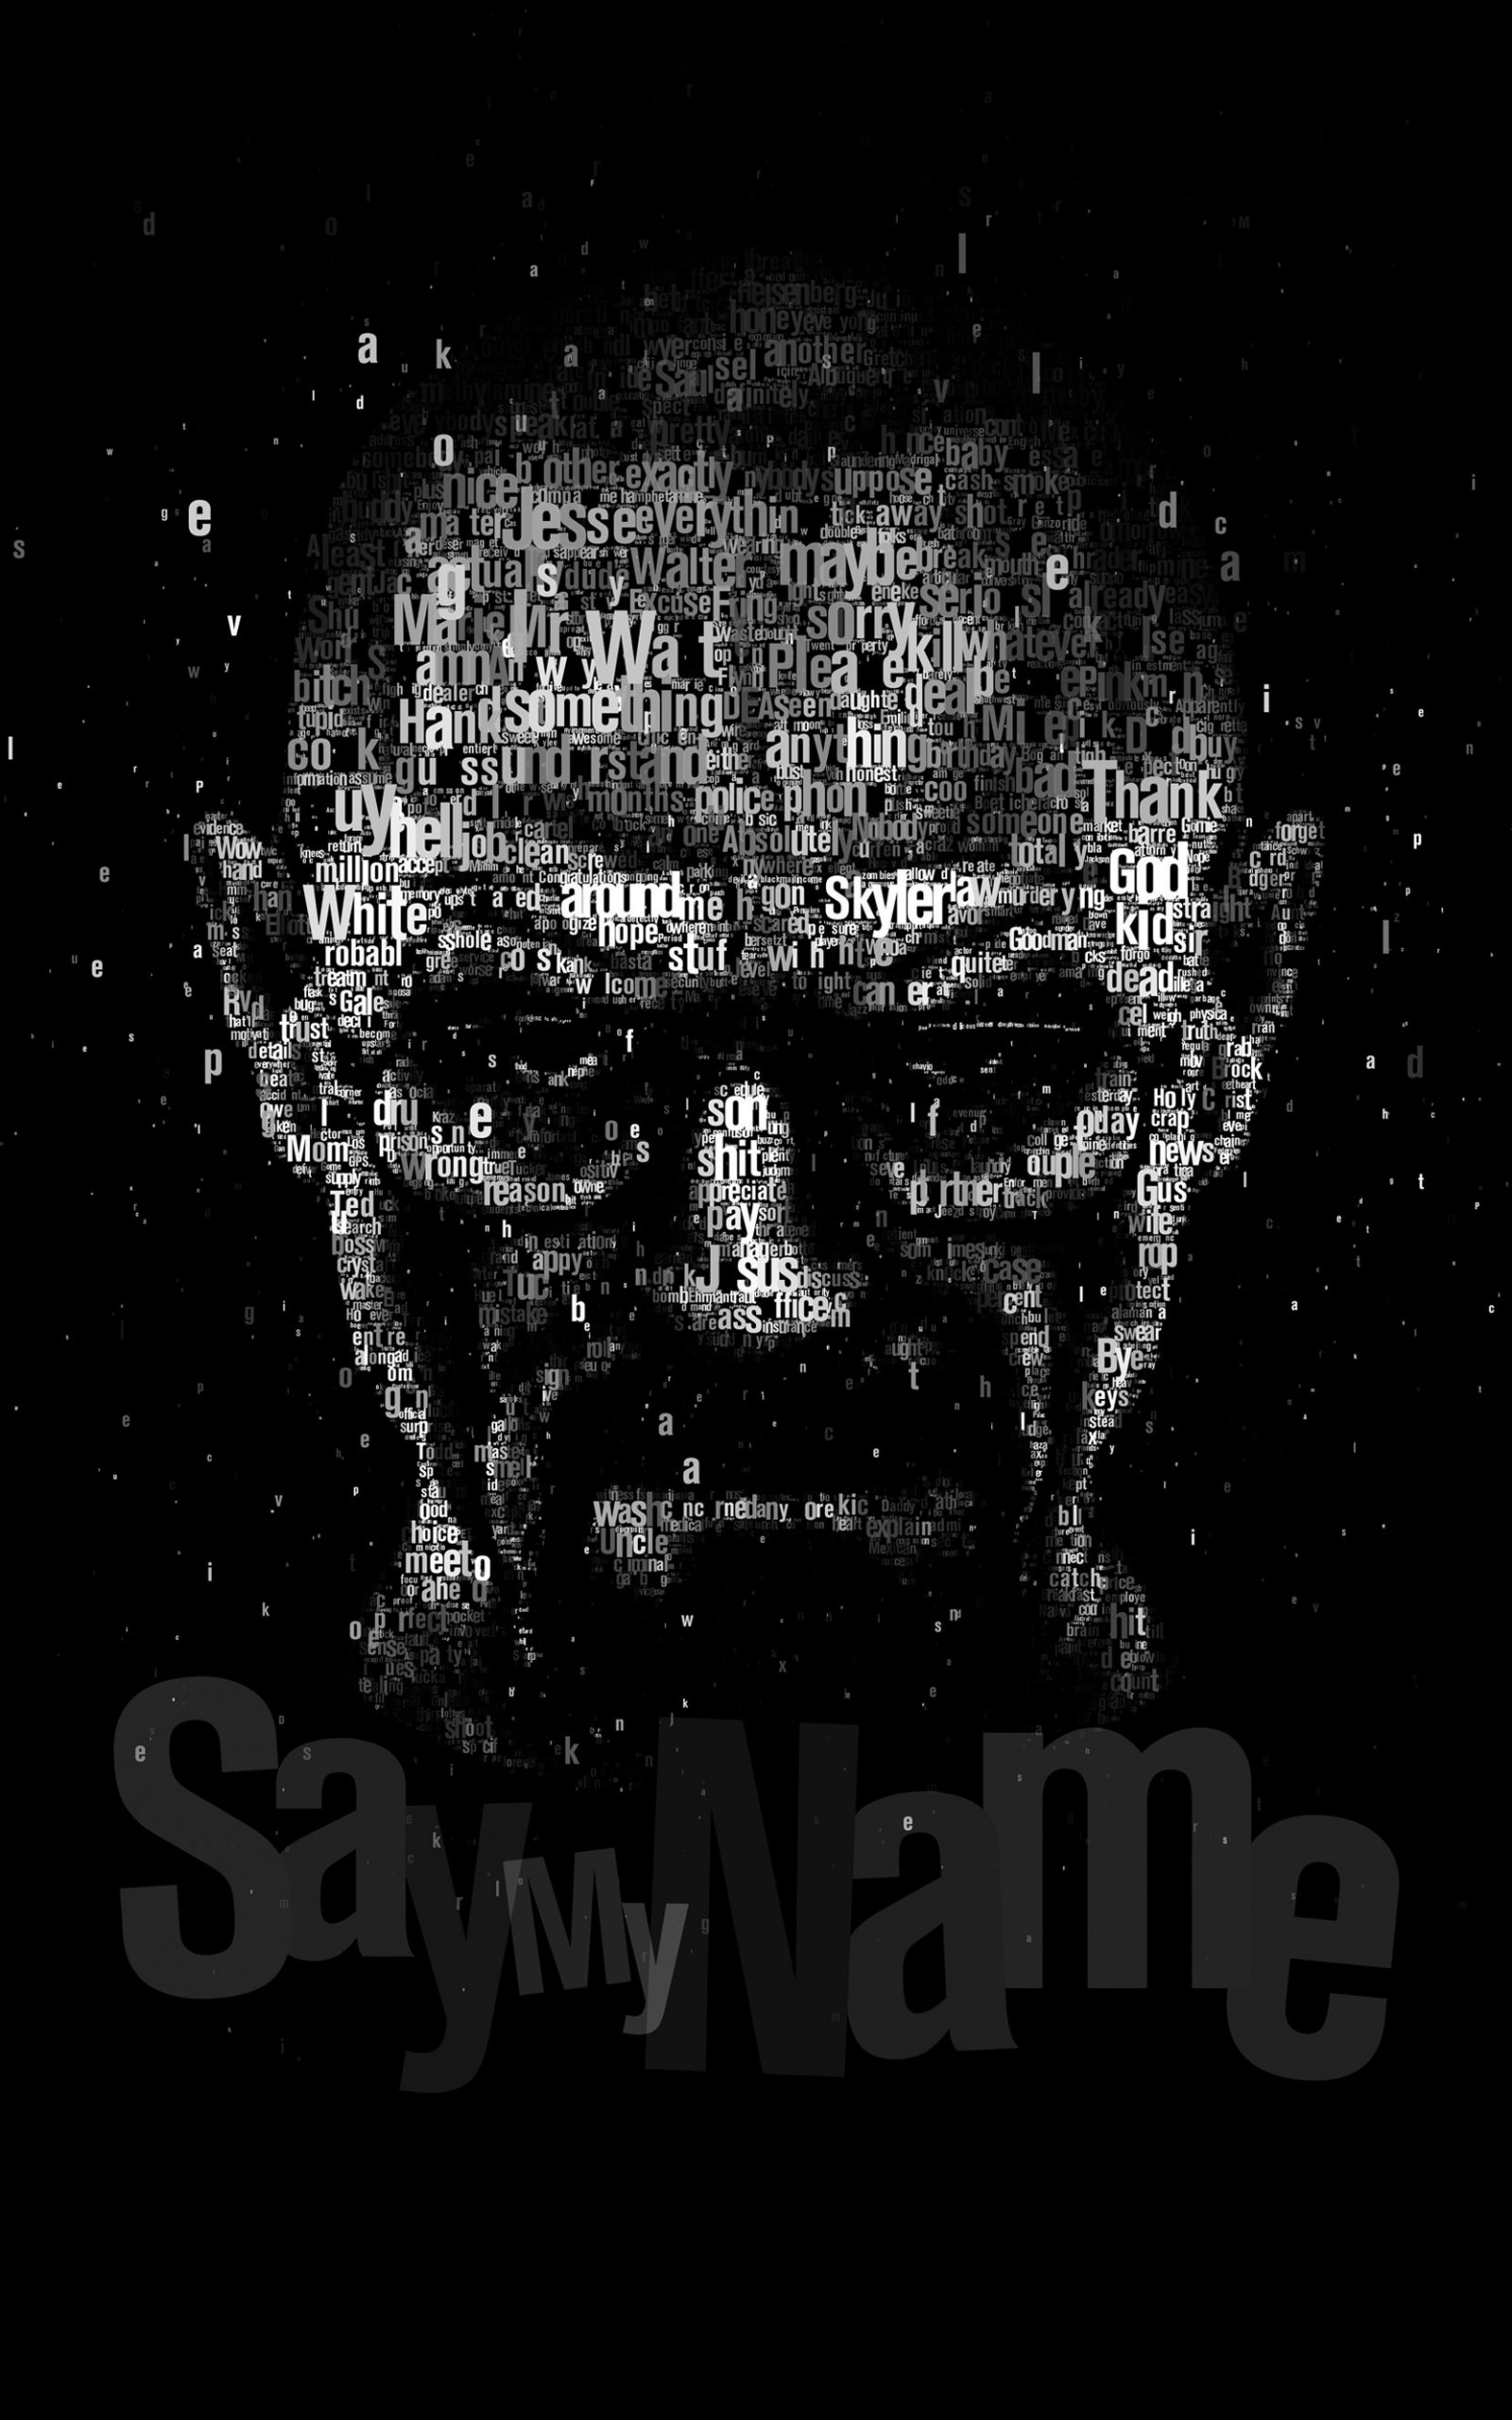 Say My Name - Typography Art Wallpaper for Amazon Kindle Fire HDX 8.9